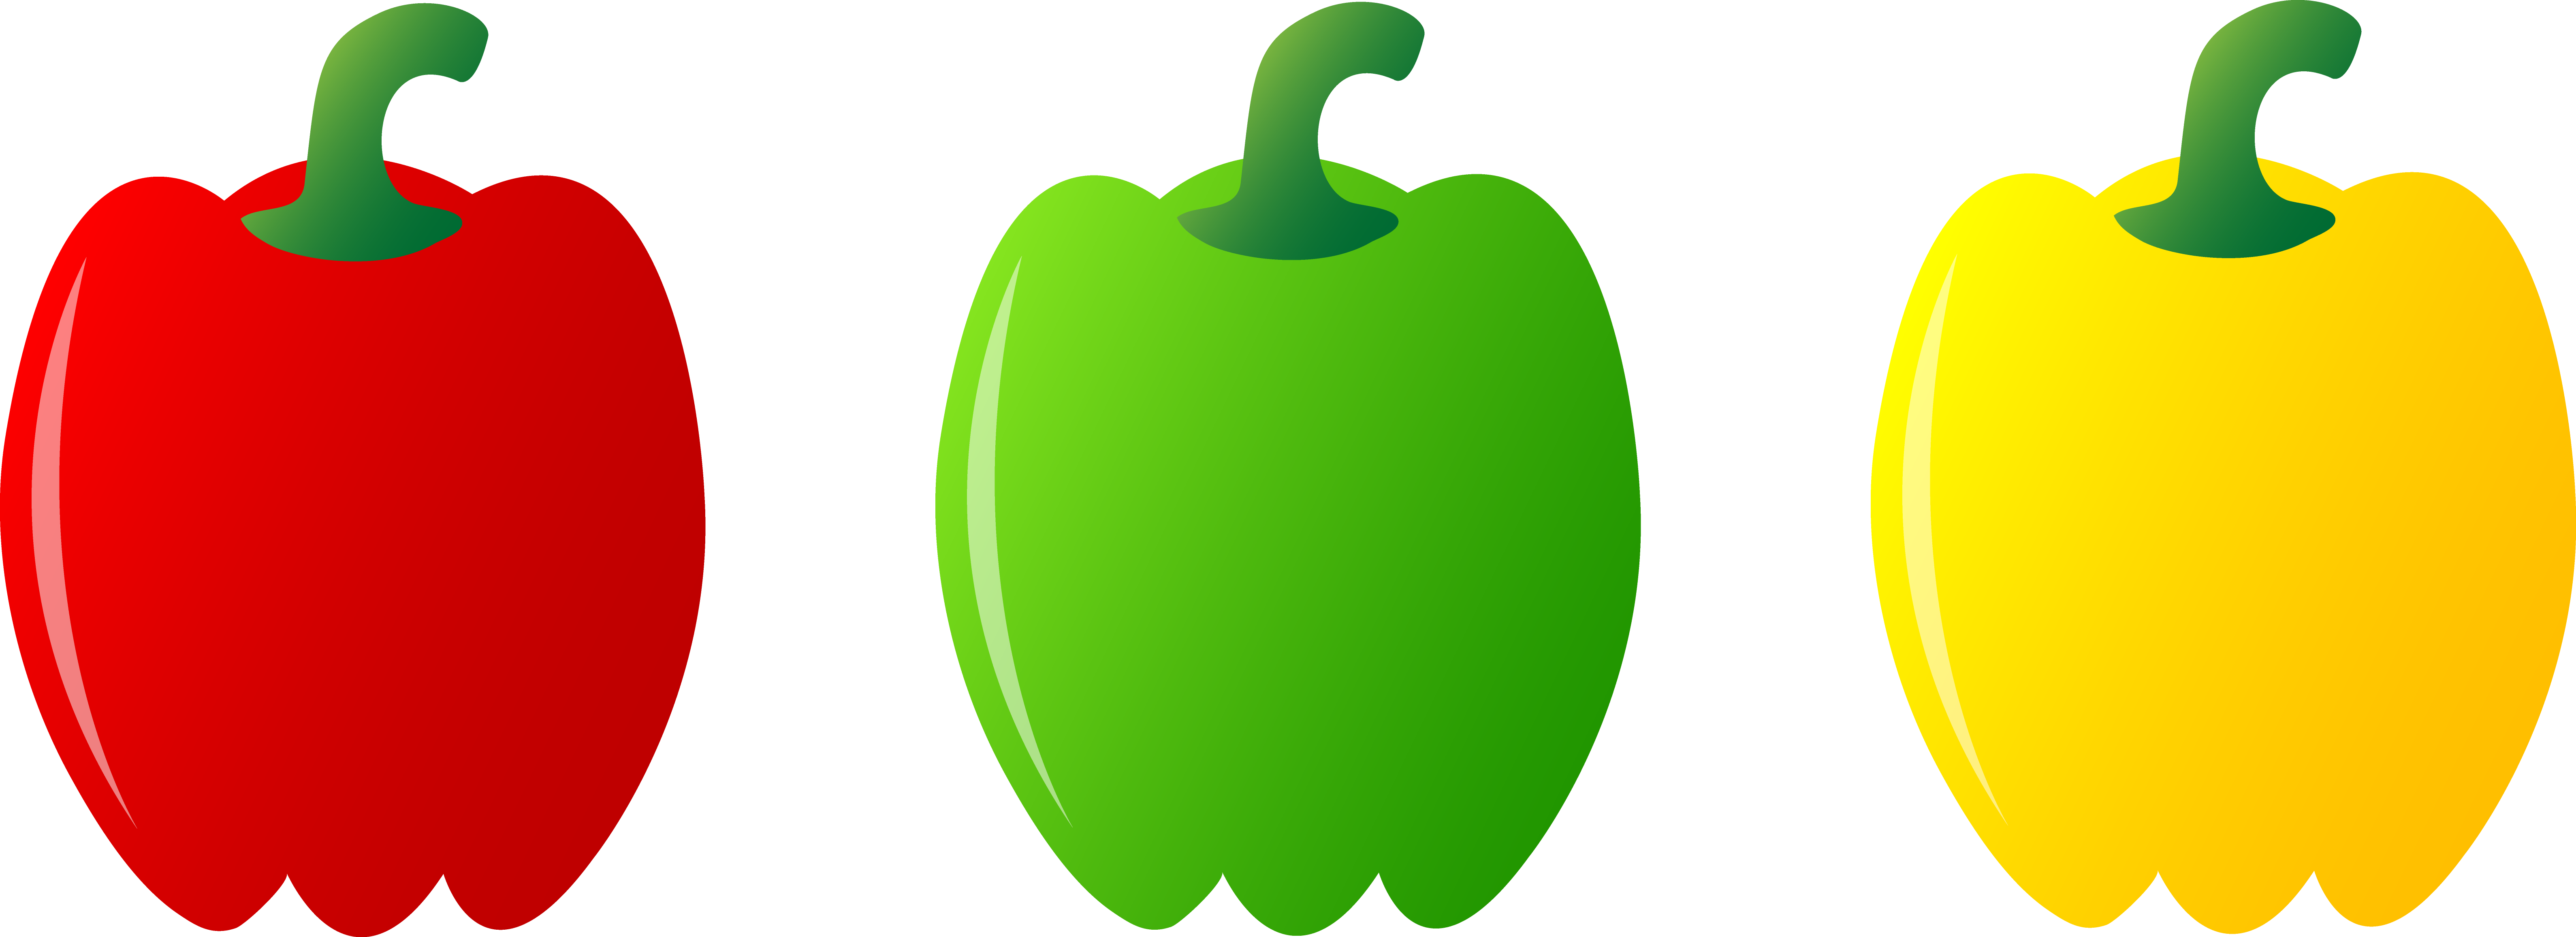 Pepper green collection peppers. Jalapeno clipart object